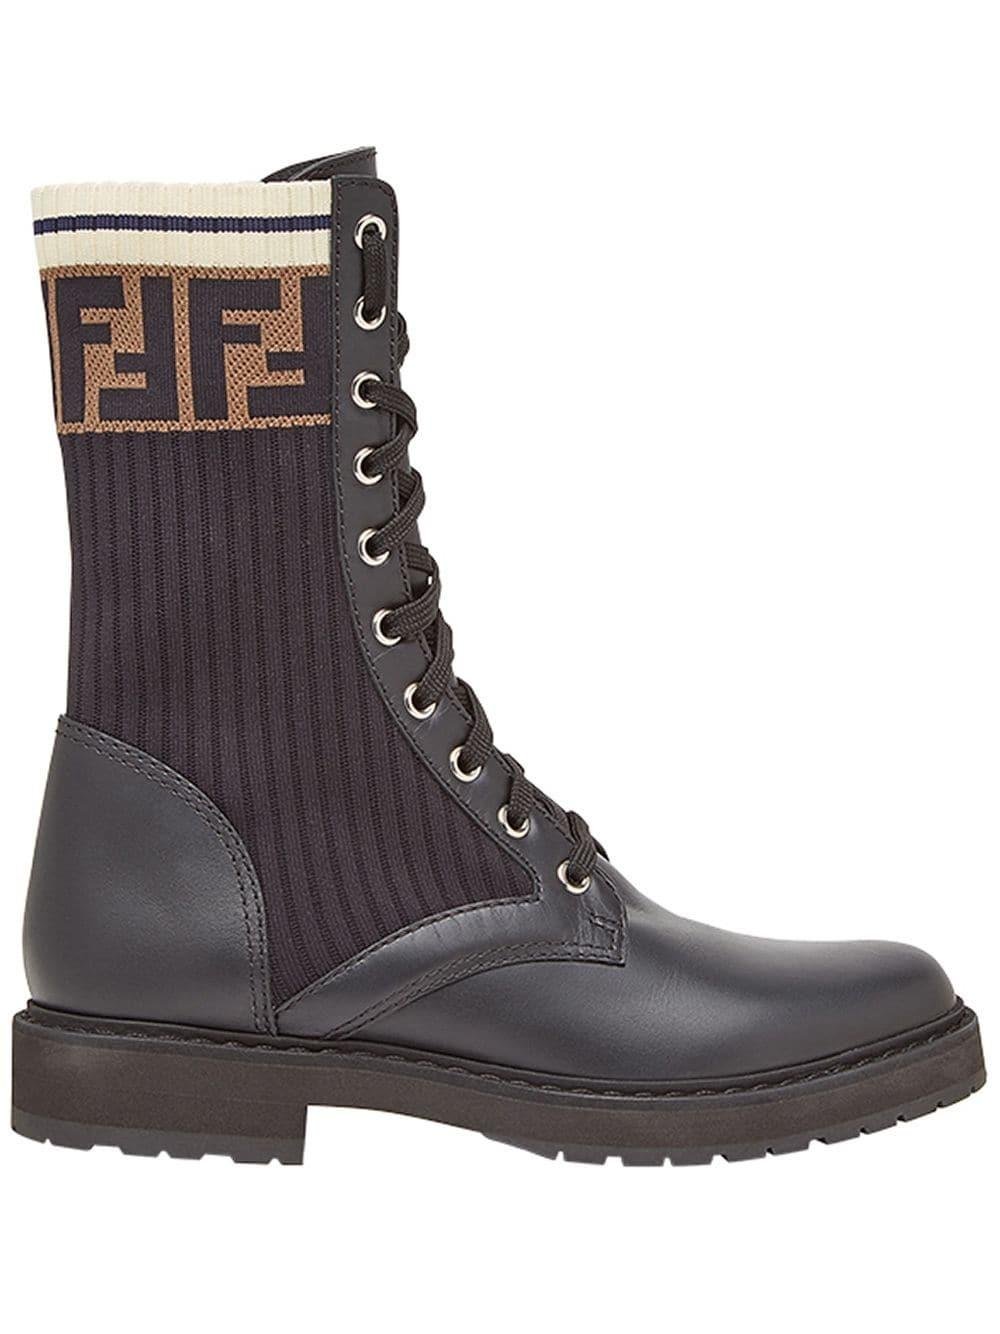 Combat Boot With Logo Band Item # 8T6780-A3H4